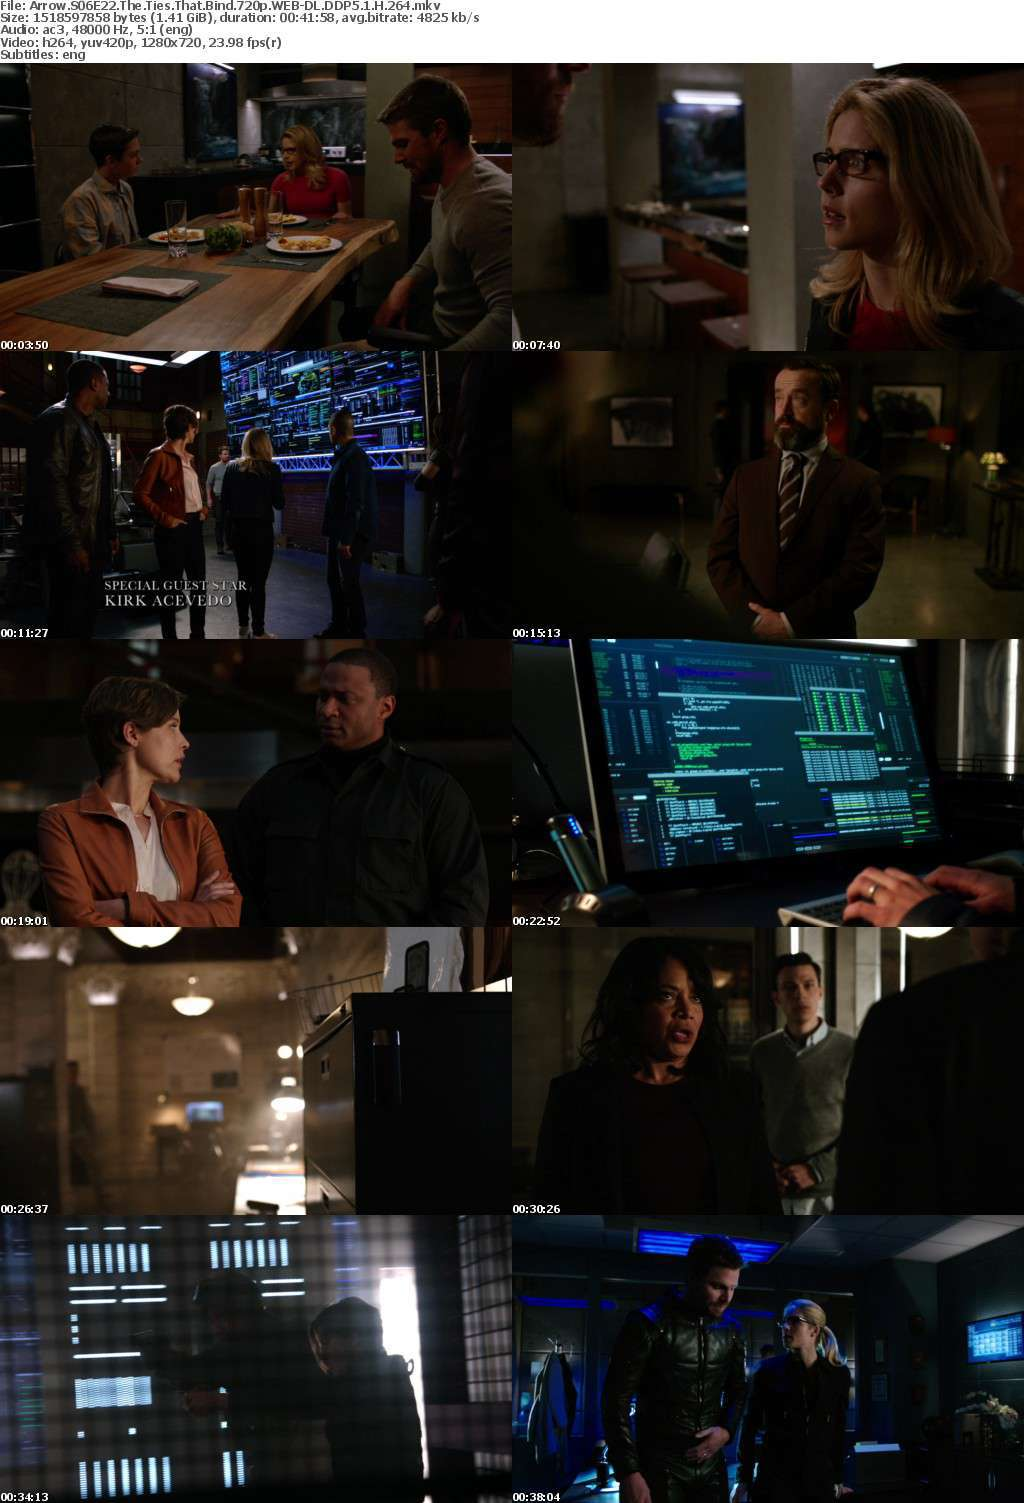 Arrow S06E22 The Ties That Bind 720p WEB-DL DDP5 1 H 264